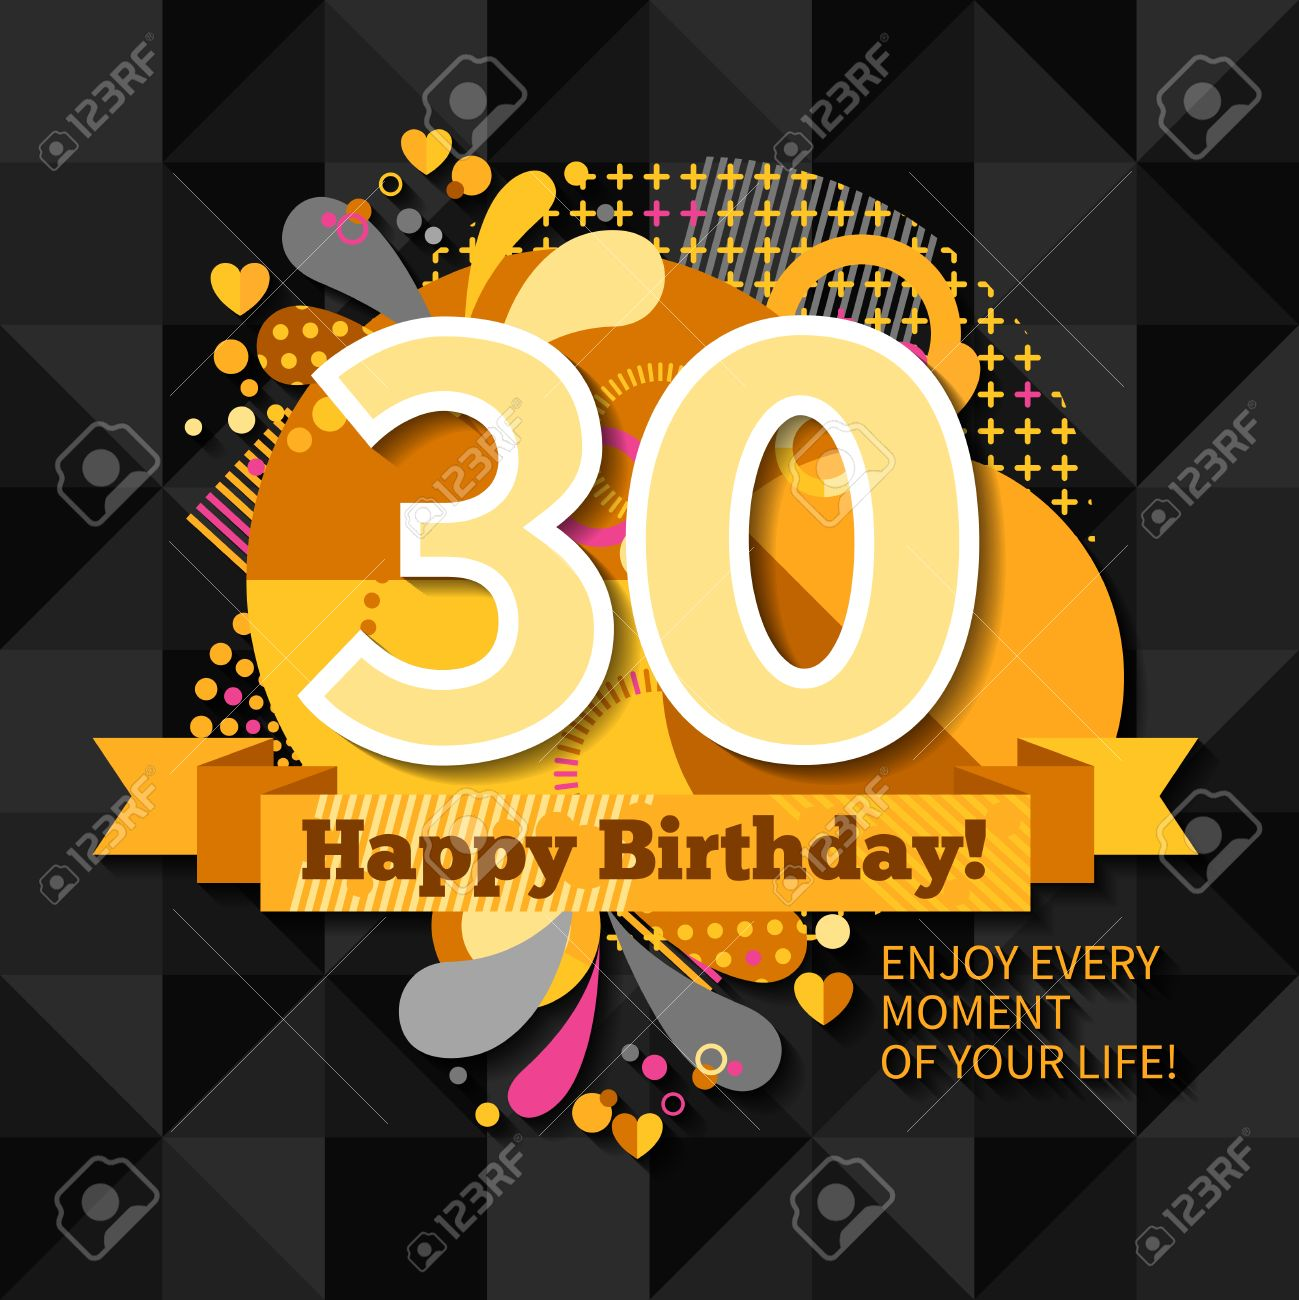 30th Anniversary Greeting Card With Wishes Happy Birthday And